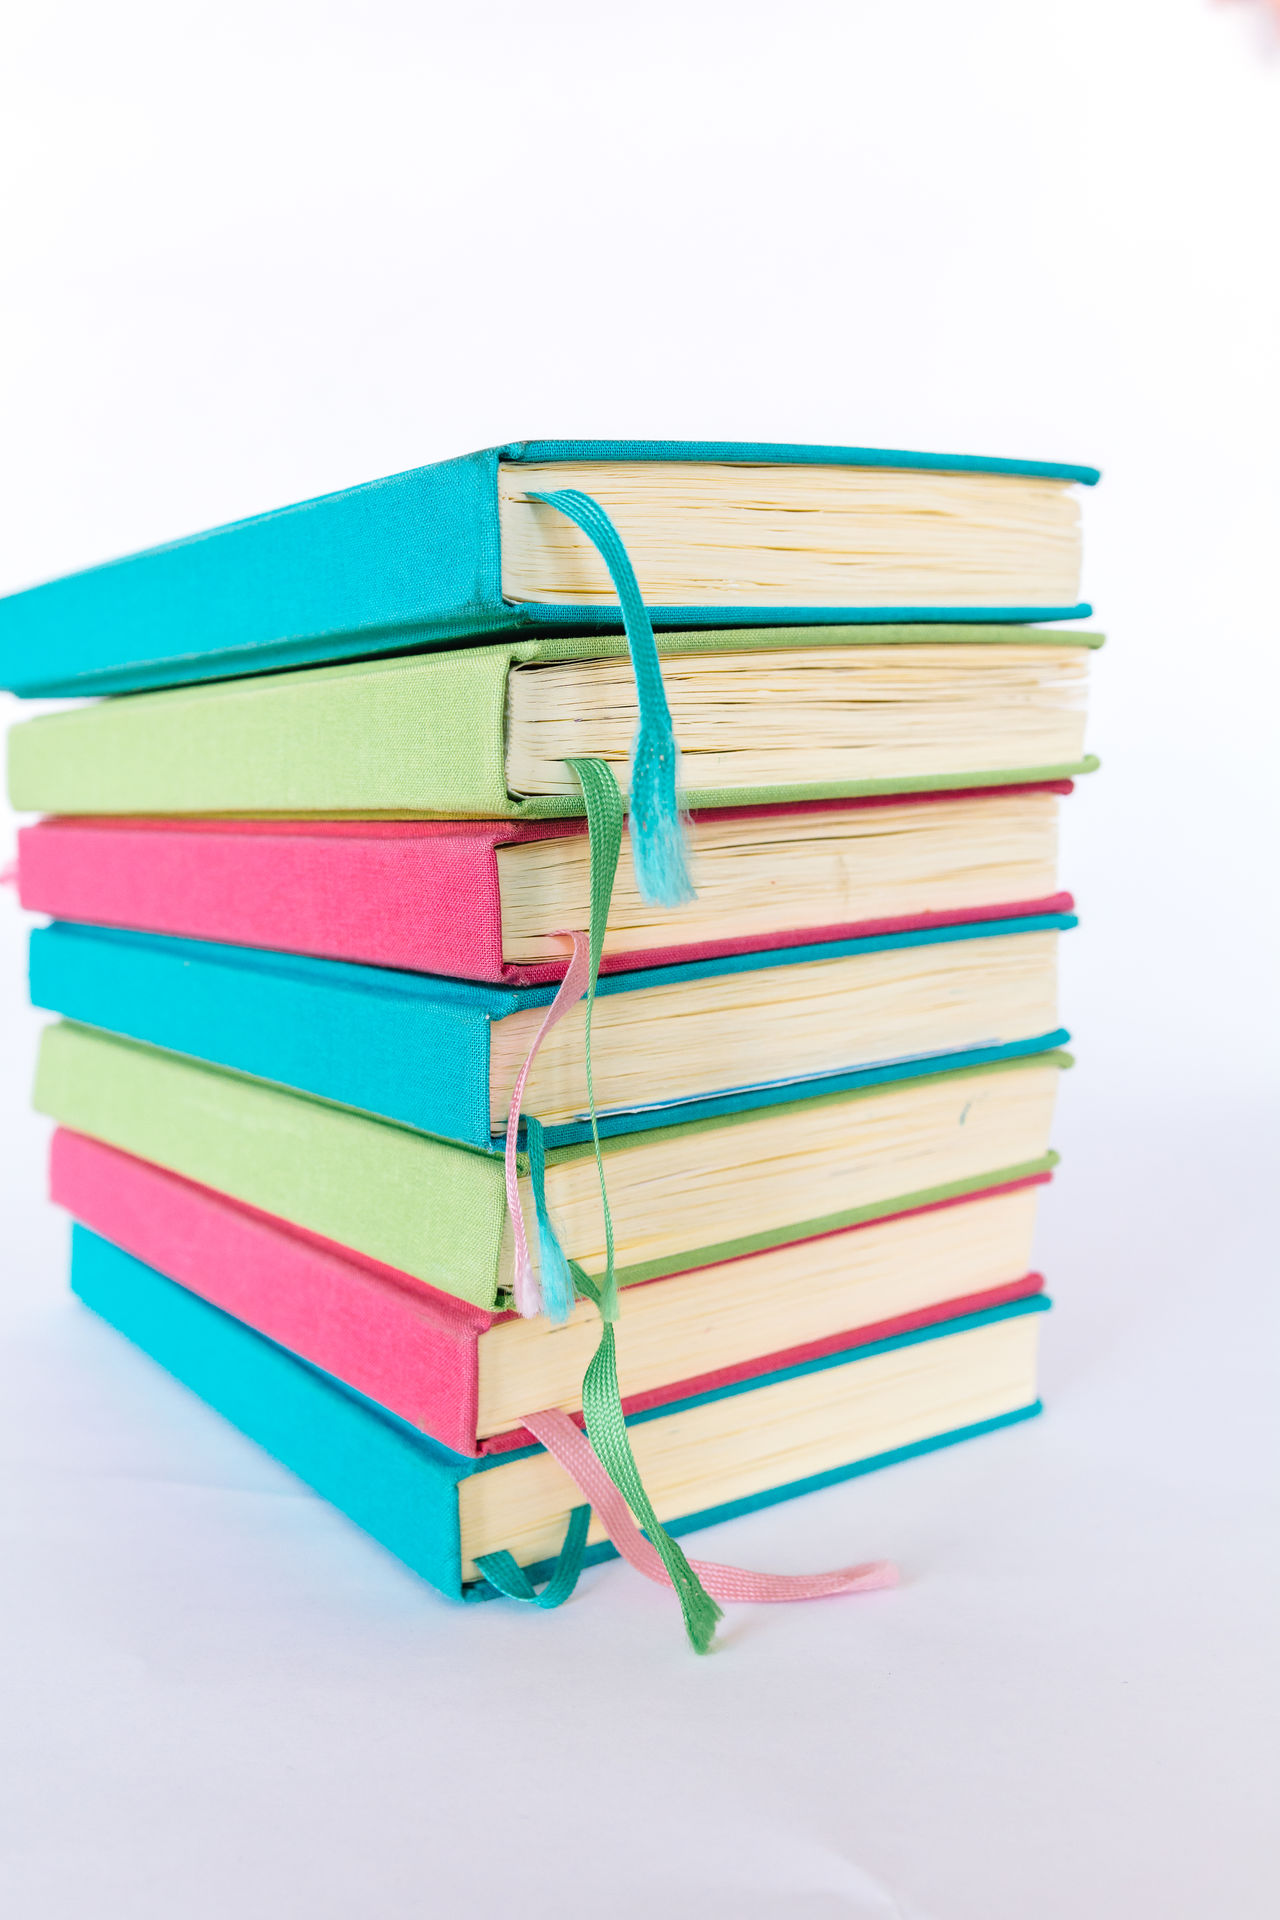 Colorful Books Blue Books Colorful Colors Cyan Education Educational Green Learning LearningEveryday Multi Colored No People Pink Reading Reading Books Reading Time Stack Studio Shot Study Hard Study Time Studying White Background